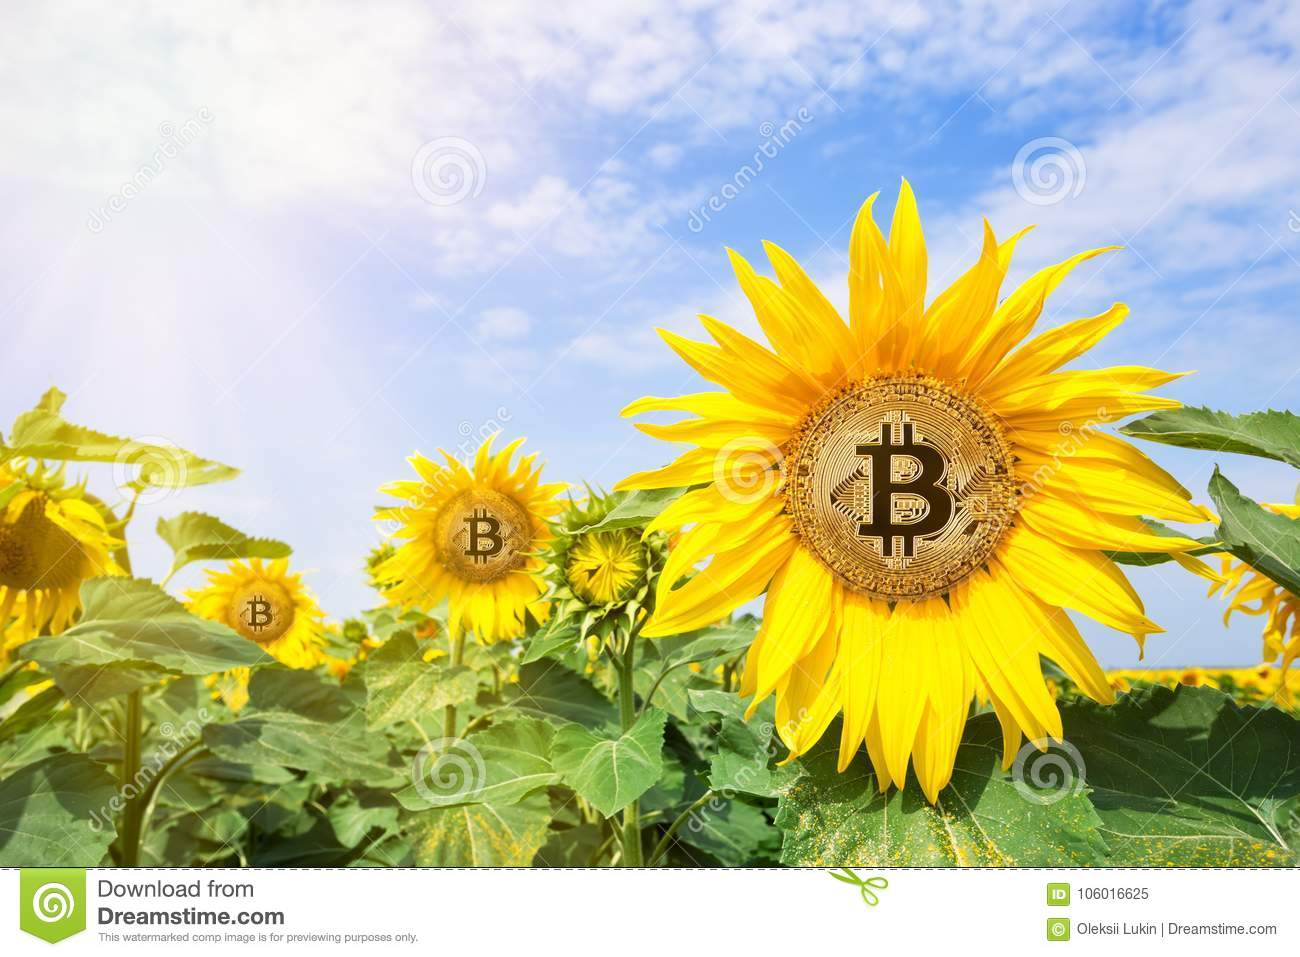 Bitcoins images of flowers 560bet betting tips